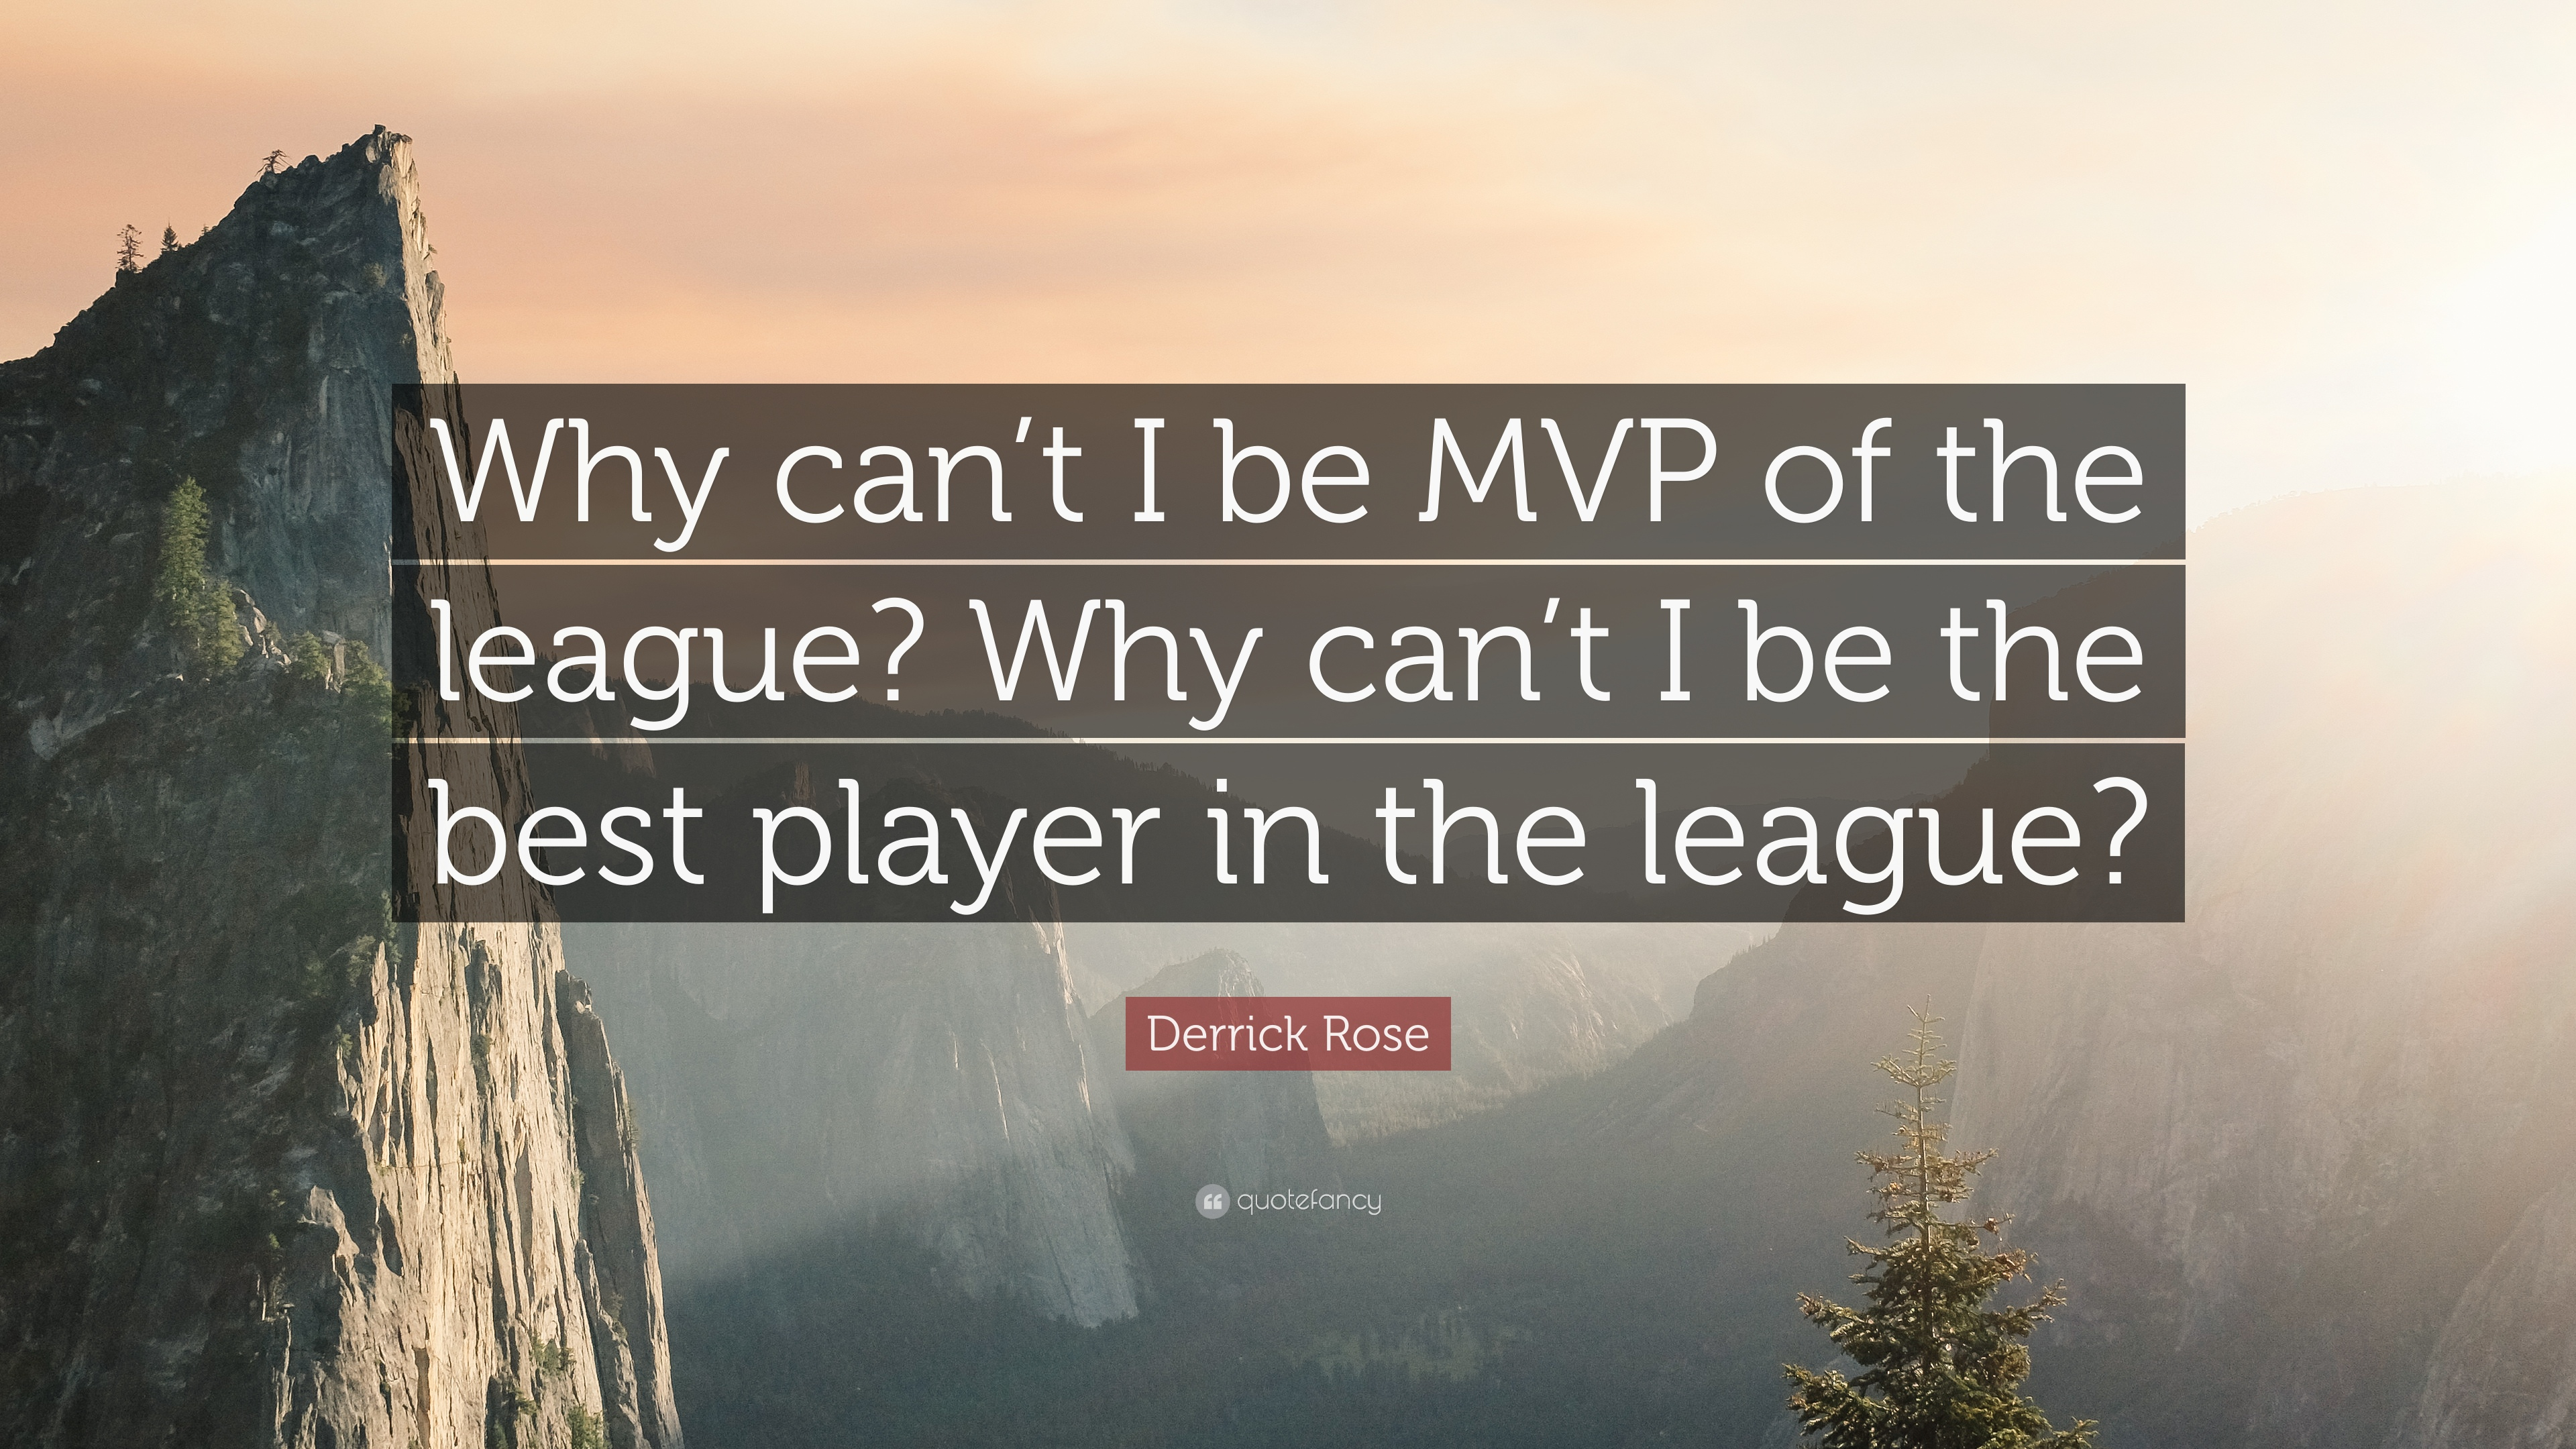 Derrick rose quote why cant i be mvp of the league why cant i derrick rose quote why cant i be mvp of the league voltagebd Gallery